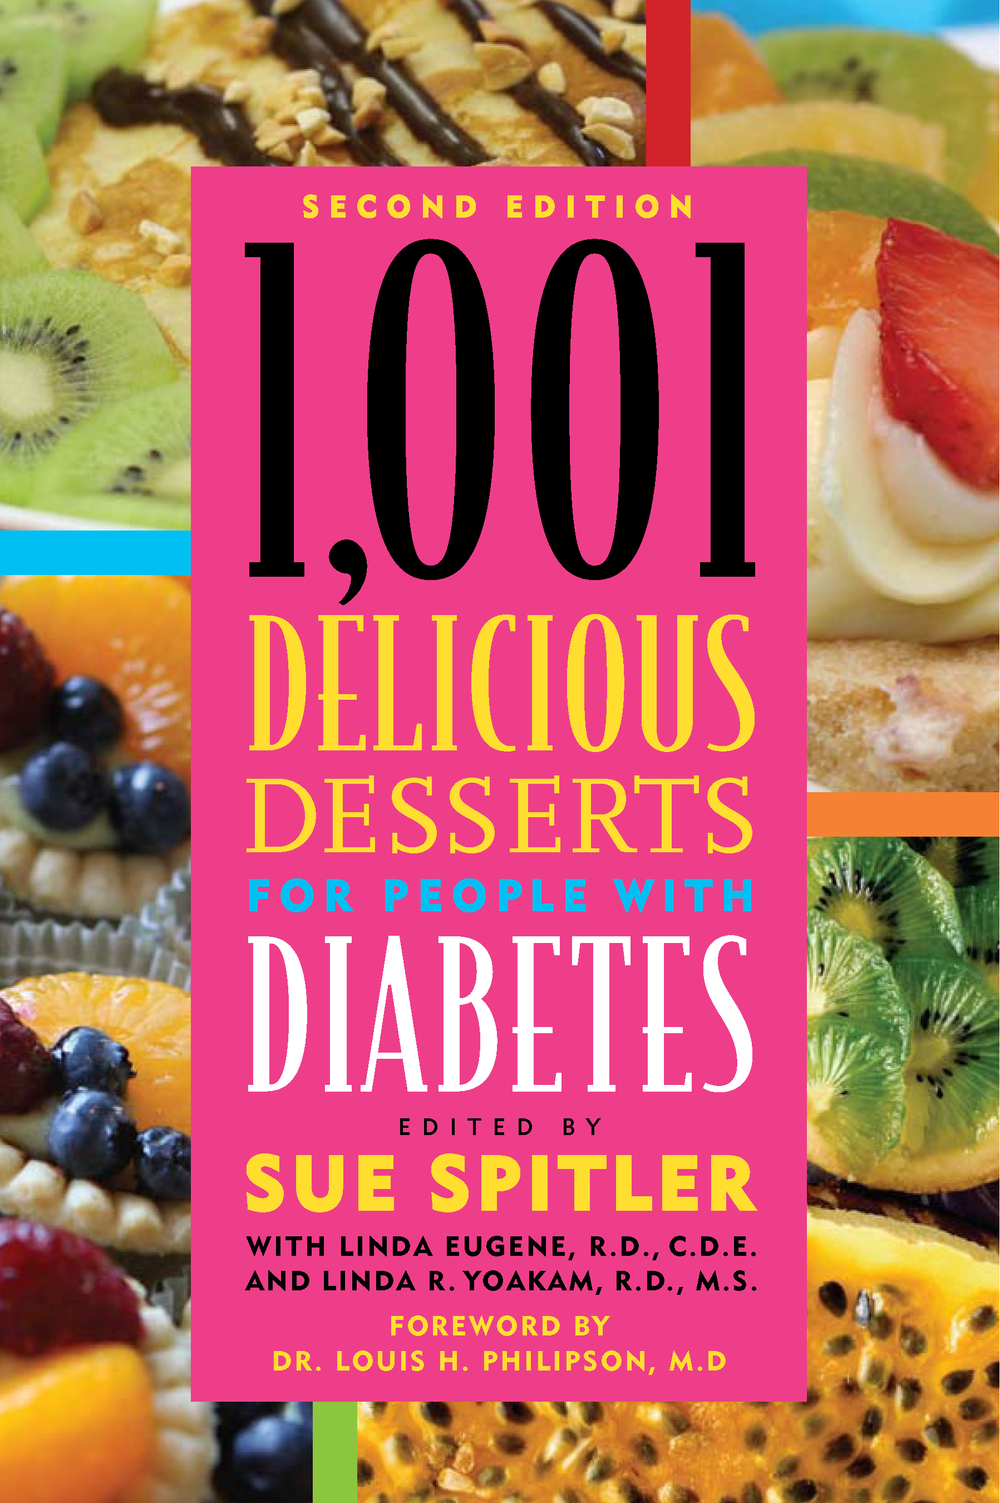 1,001 Delicious Desserts for People with Diabetes_Page_01.png